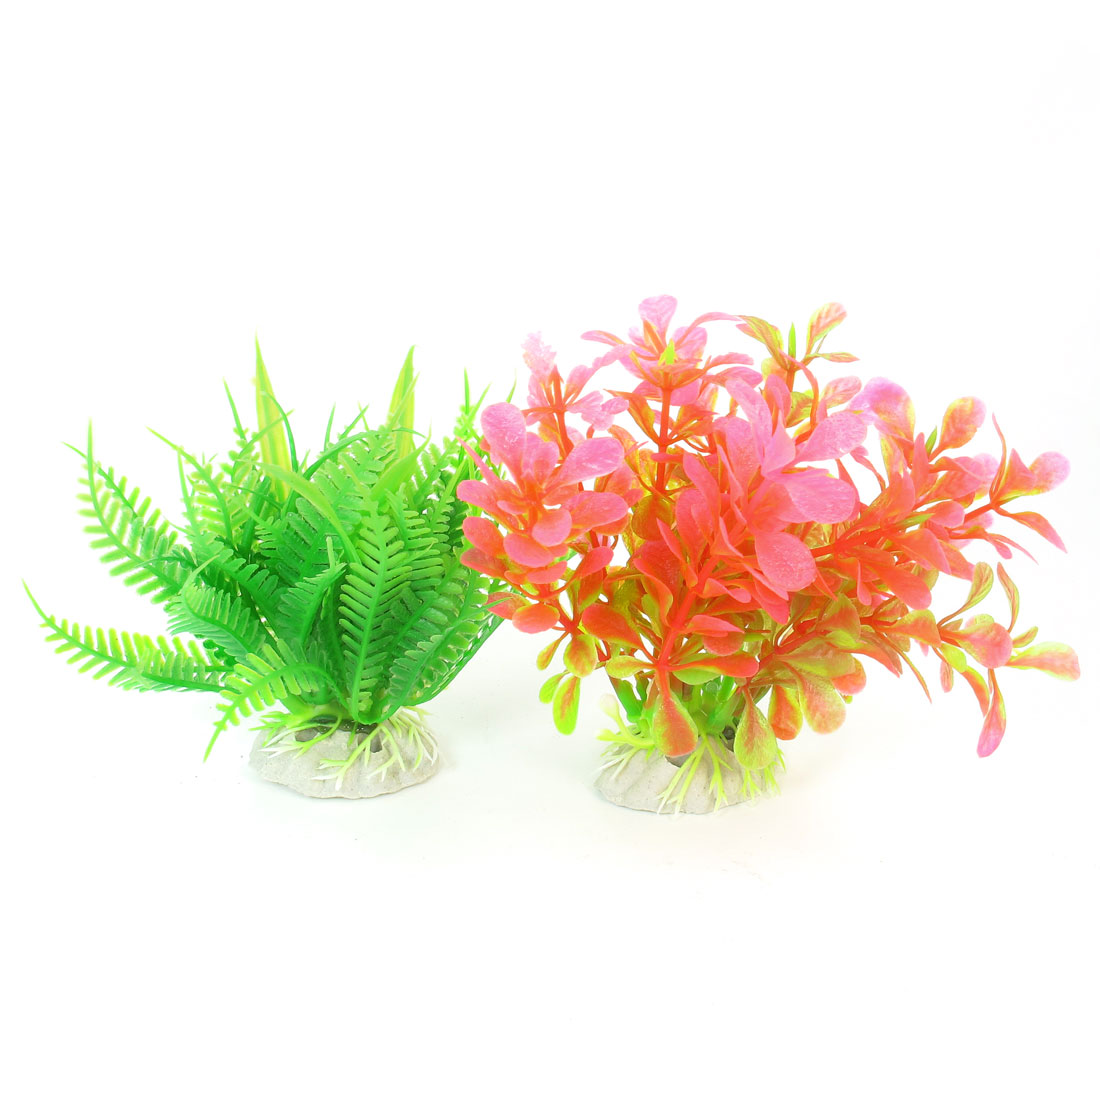 2 Pcs Green Pink Emulational Underwater Grasses Decor for Aquarium Fish Tank